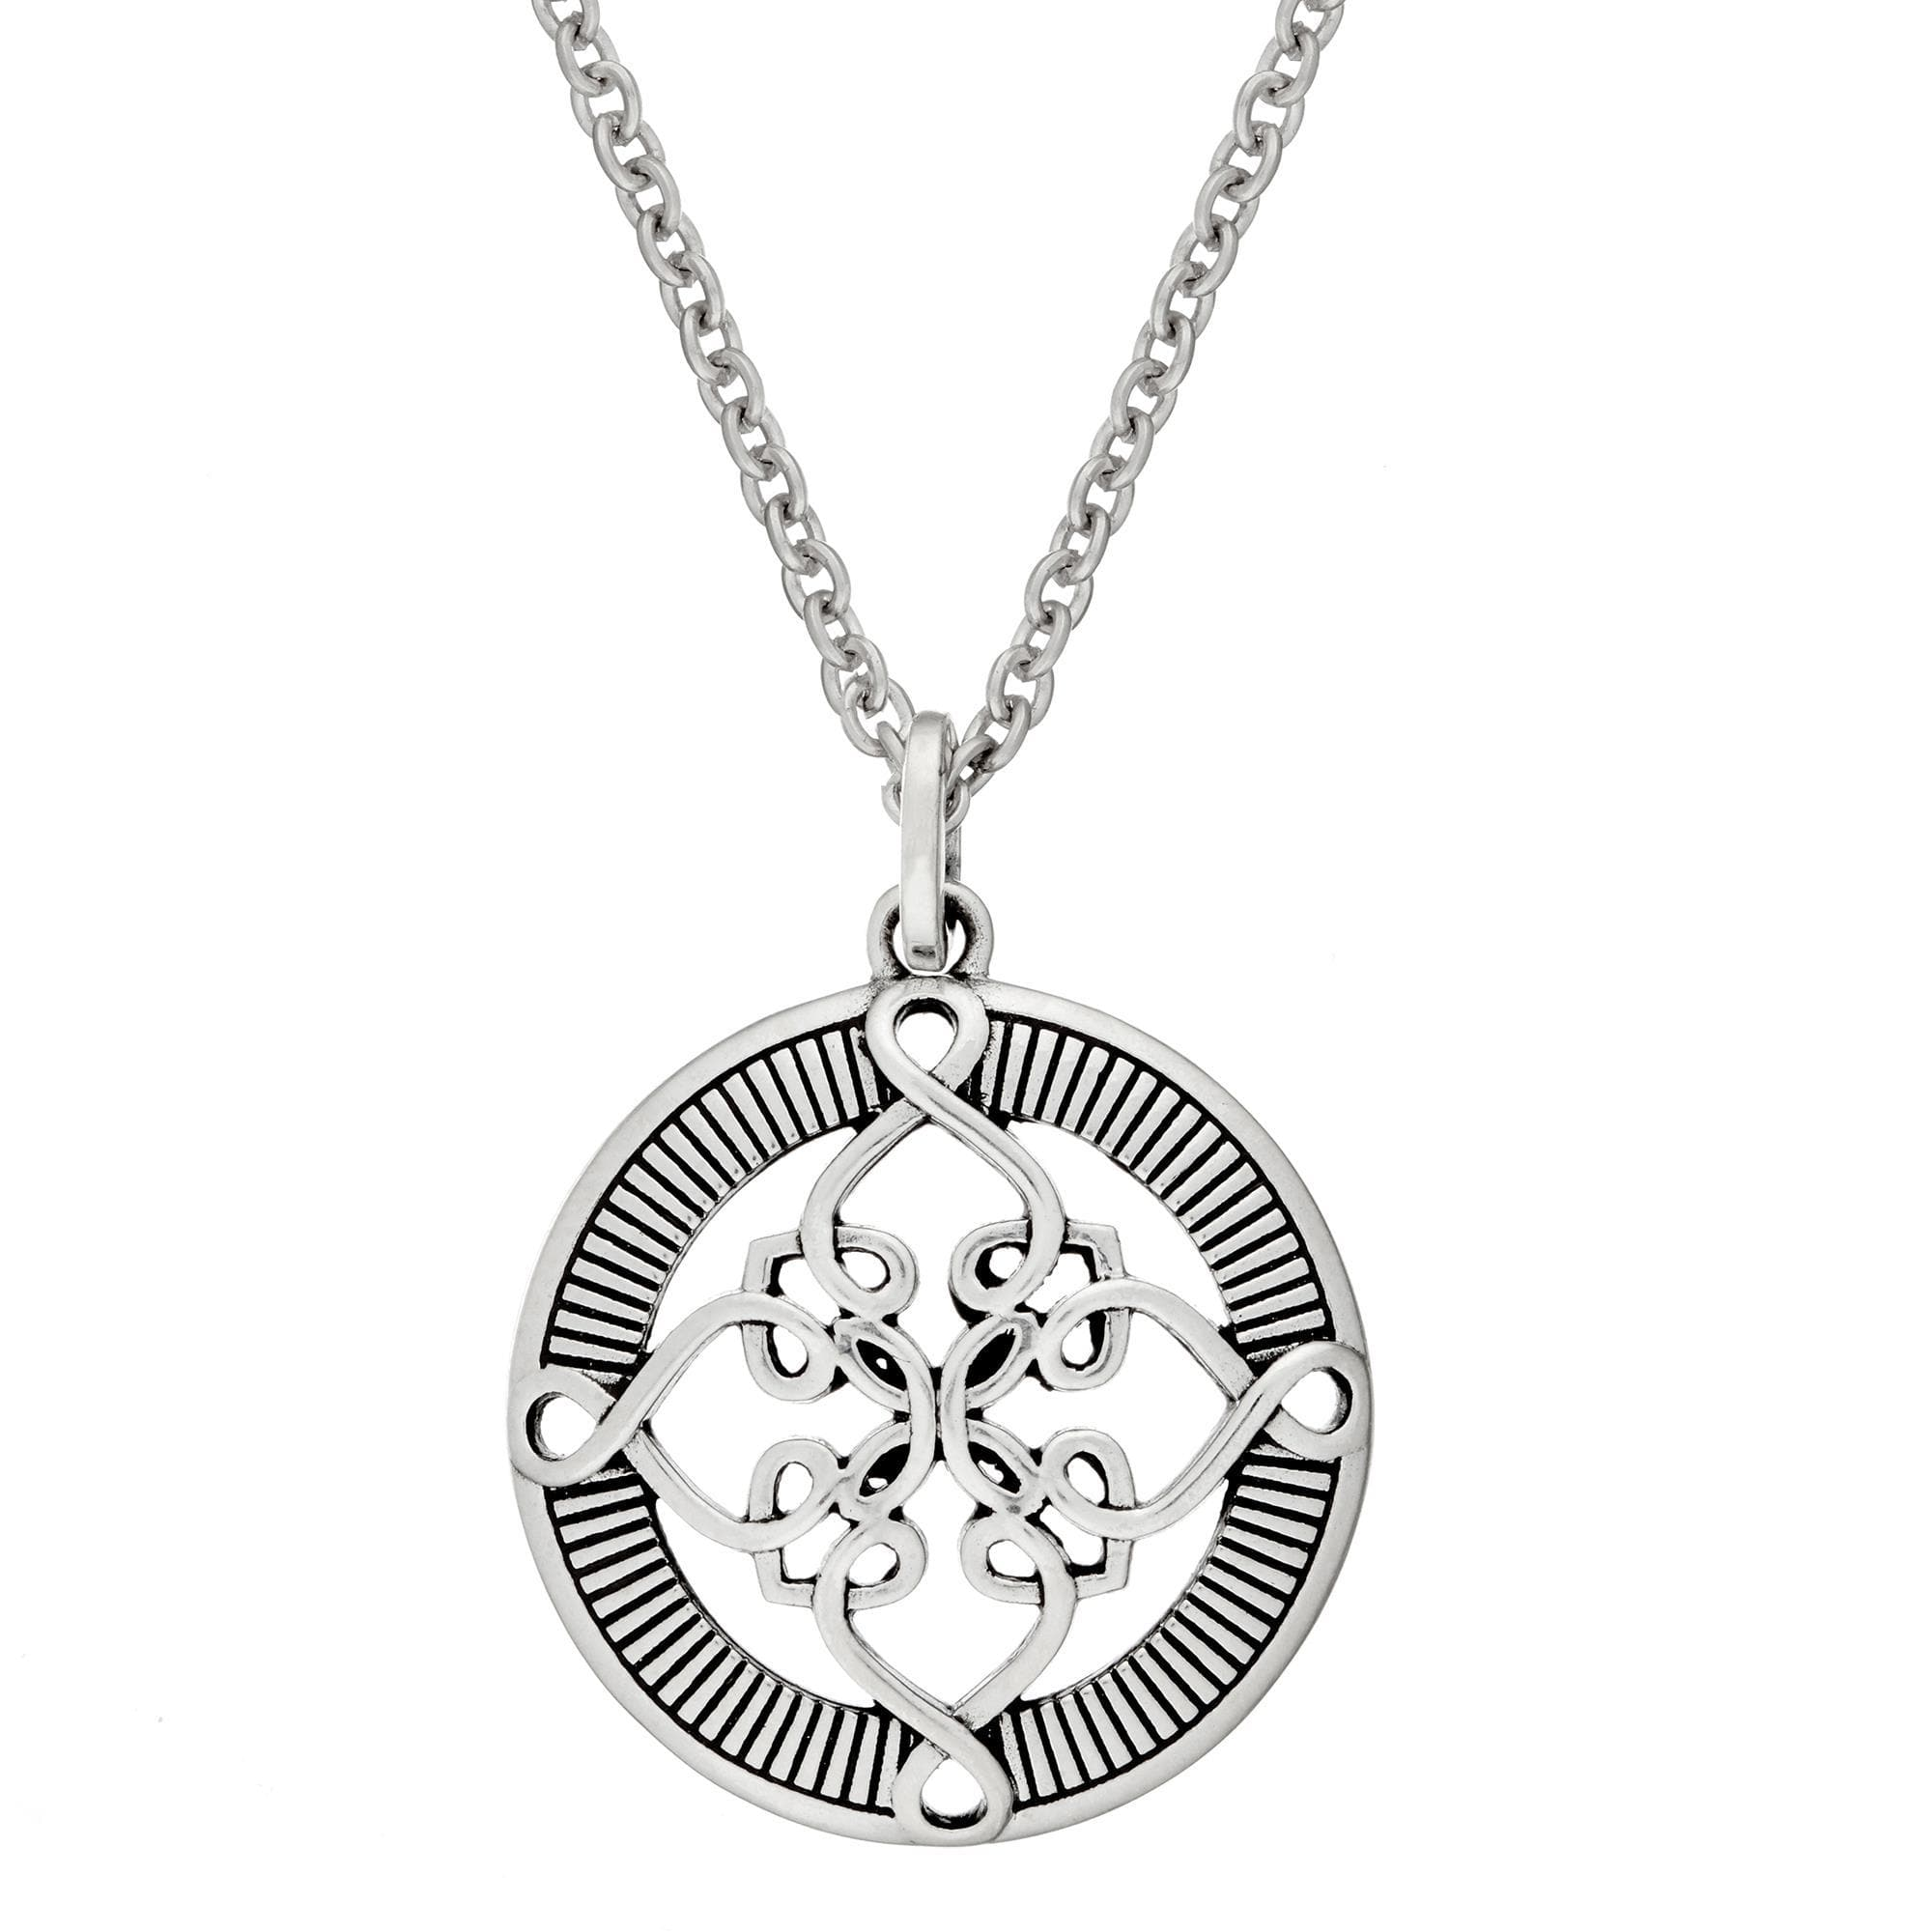 links ca pendant london of silver timeless small hires sterling necklace en